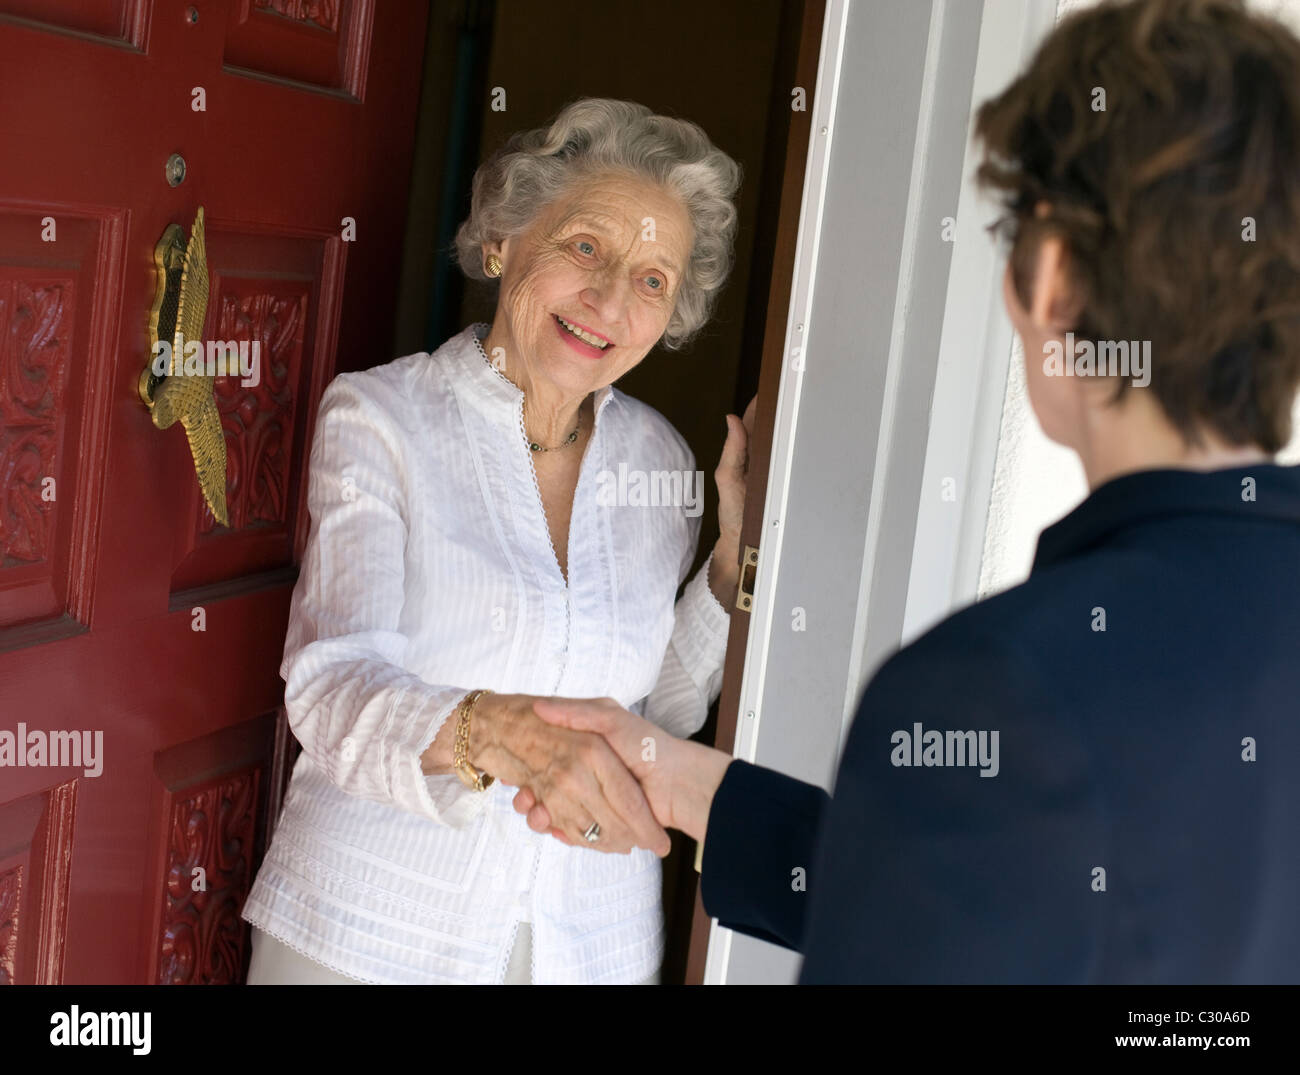 Smiling senior woman greeting visitor at the front door - Stock Image